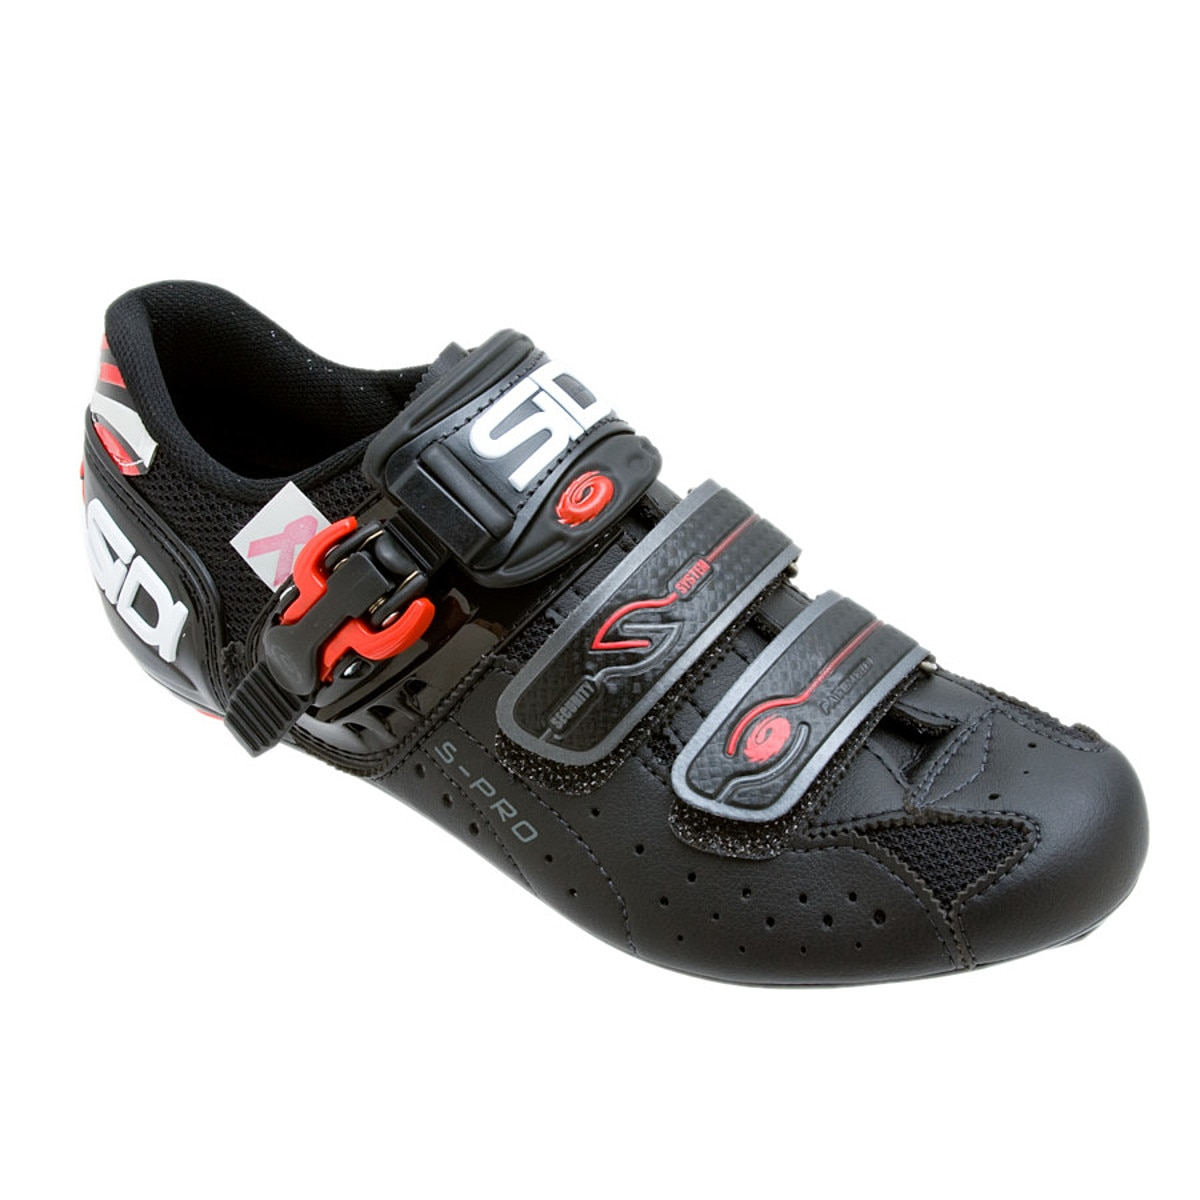 Sidi  Pro Women S Cycling Shoe